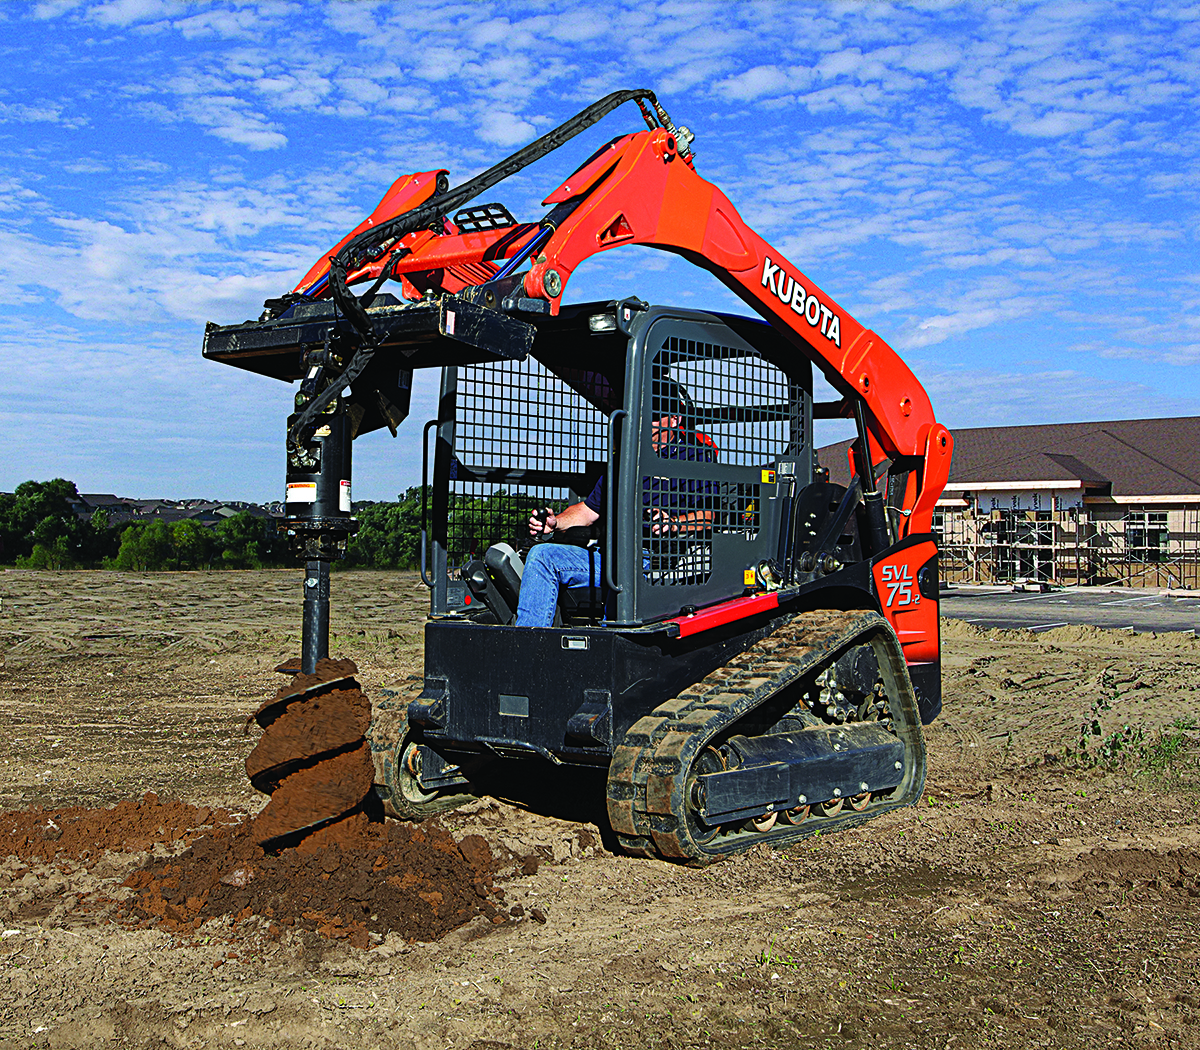 Kubota compact track loader with auger attachment